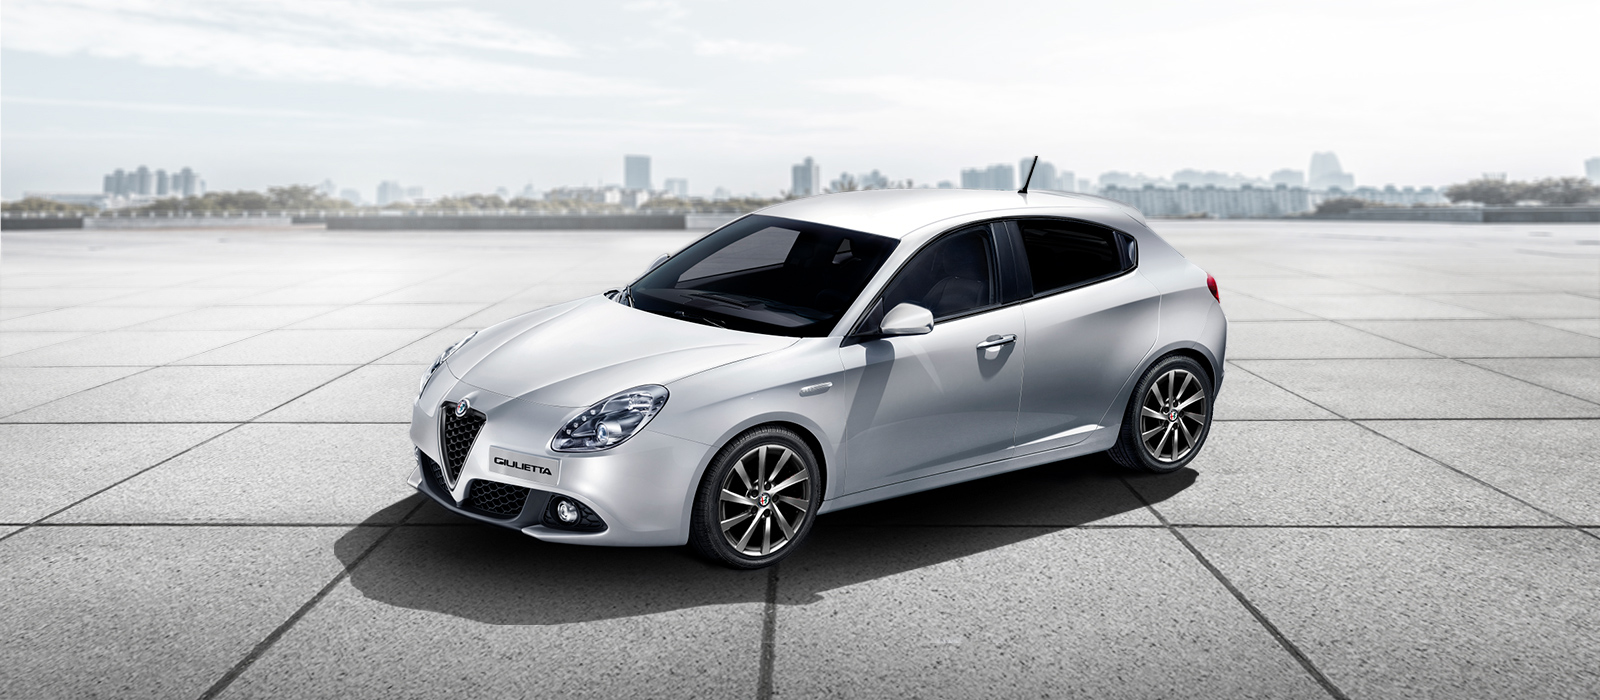 nouvelle alfa romeo giulietta plus. Black Bedroom Furniture Sets. Home Design Ideas